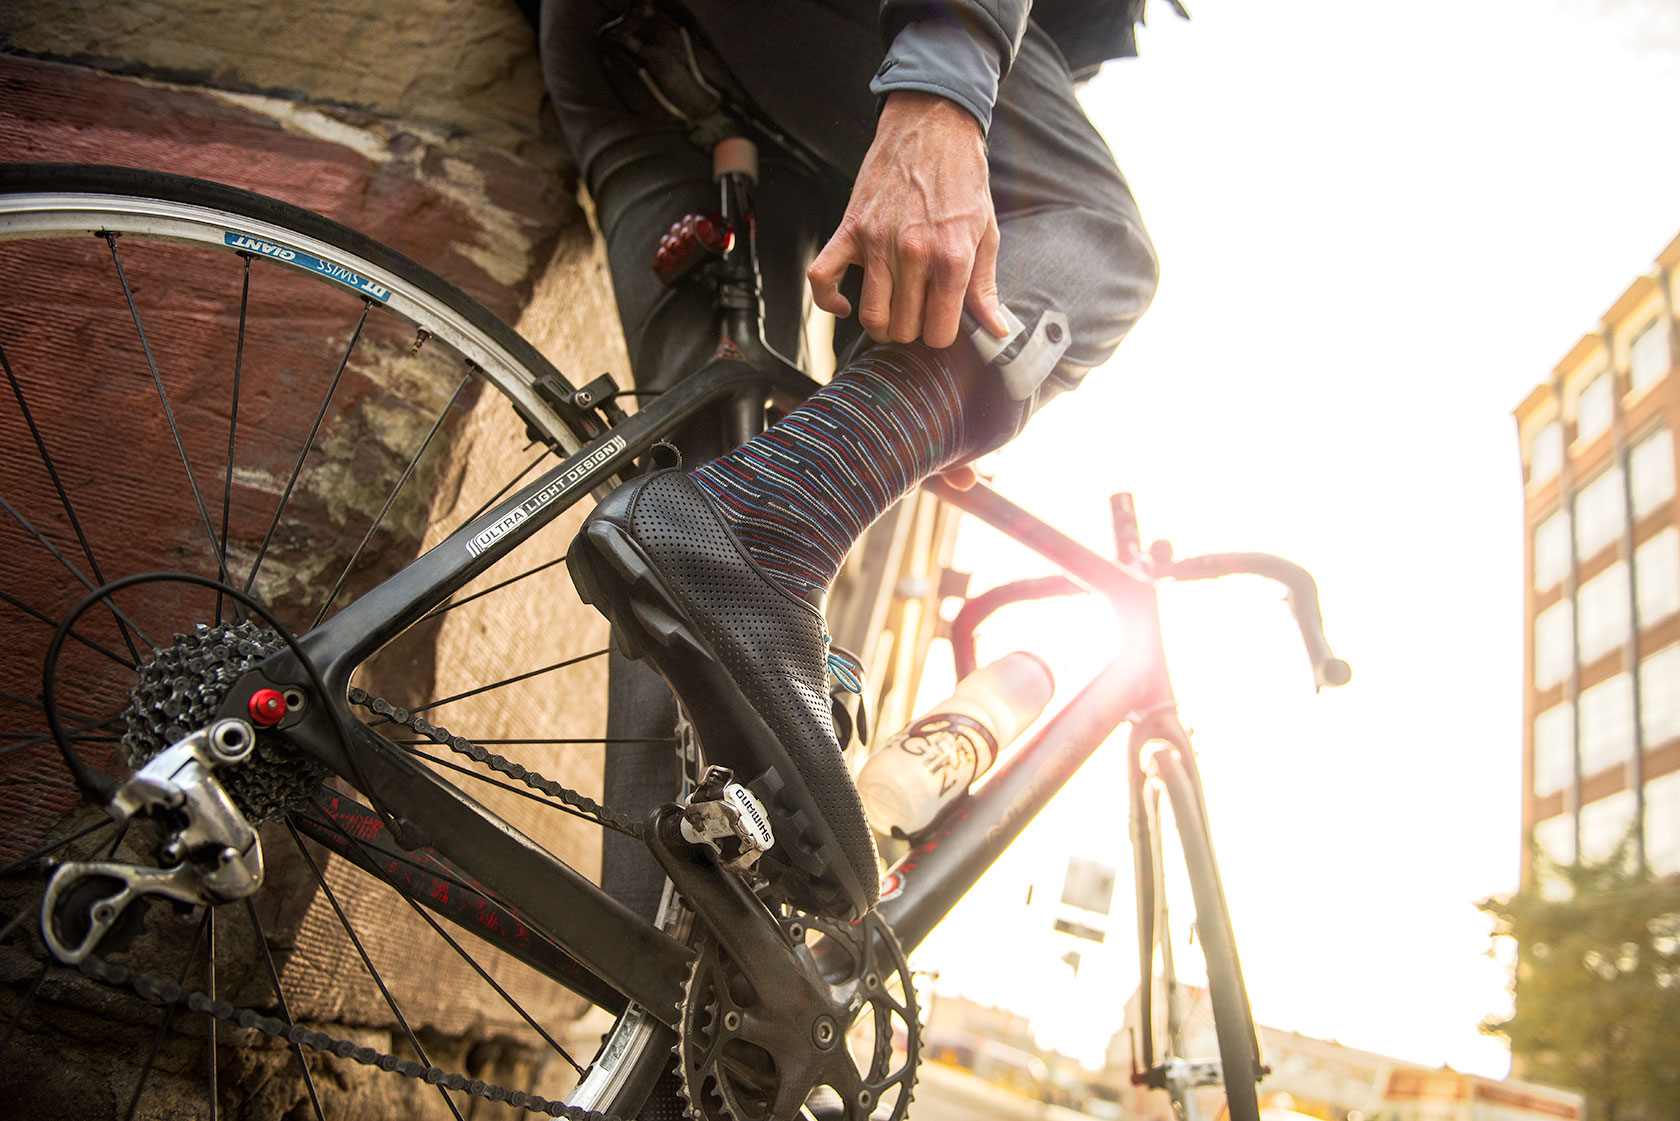 austin-trigg-seattle-bicycle-company-lifestyle-shoes-clip-in-apparel.jpg